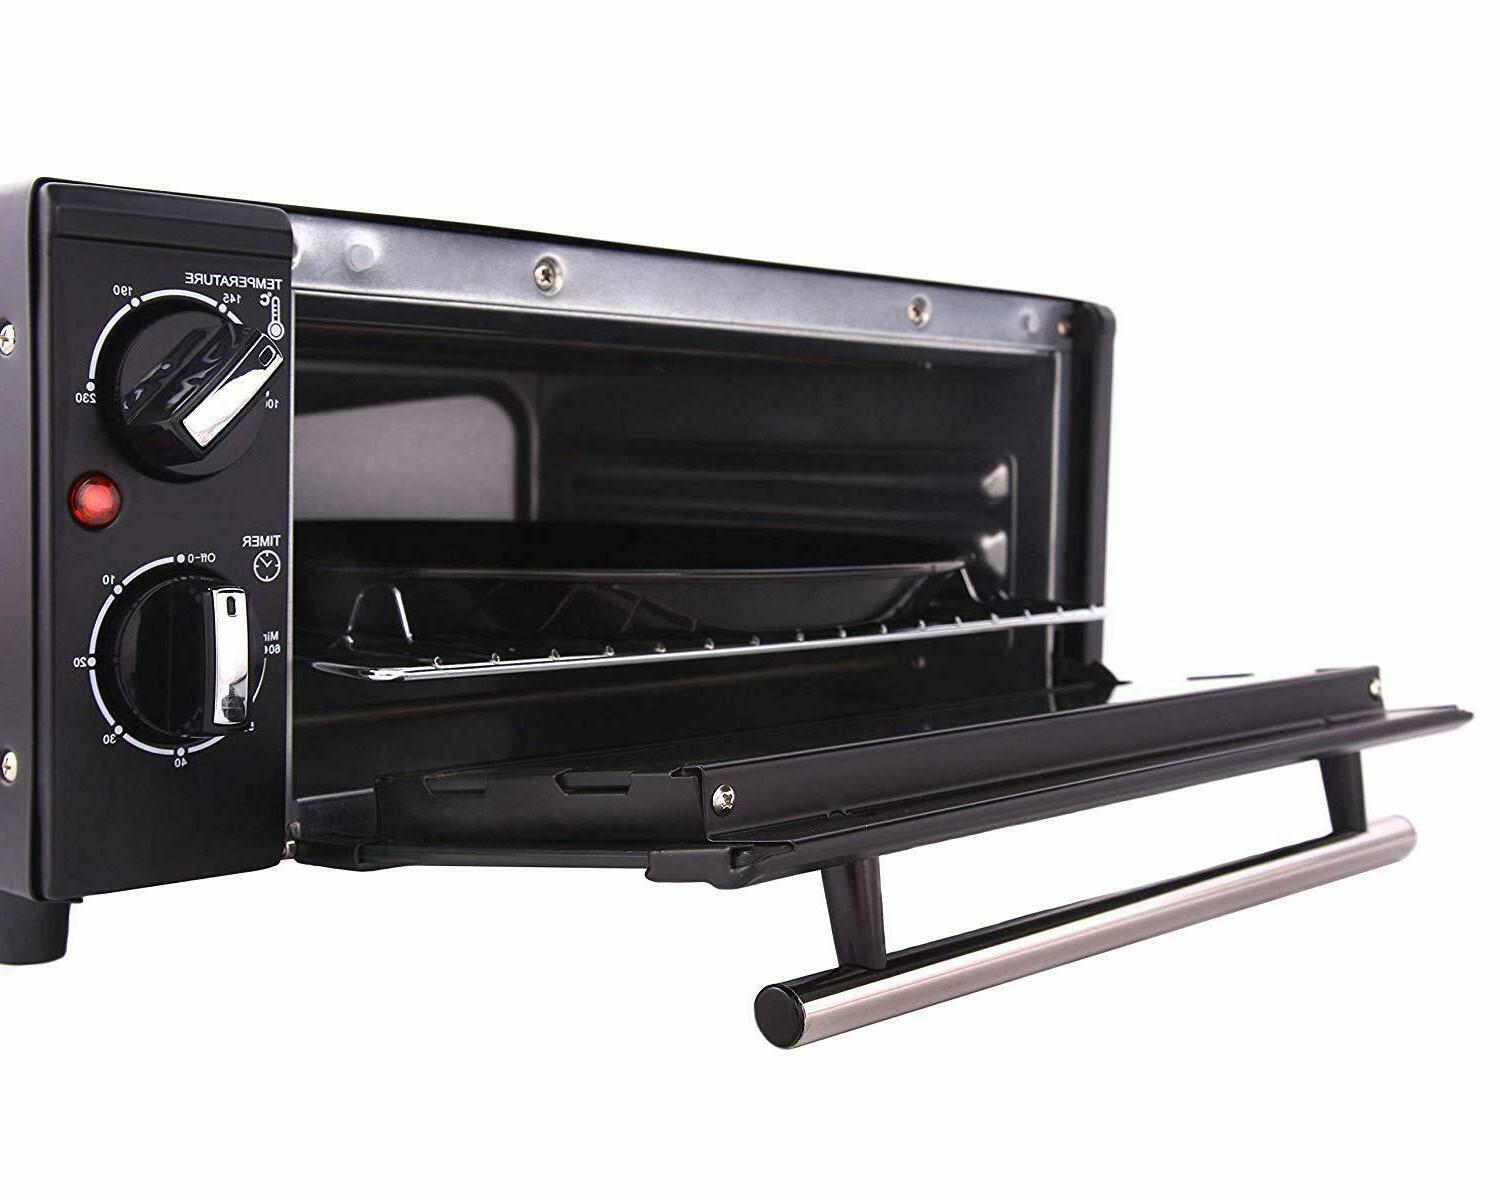 Camry Oven For Pizzastermostato Of To